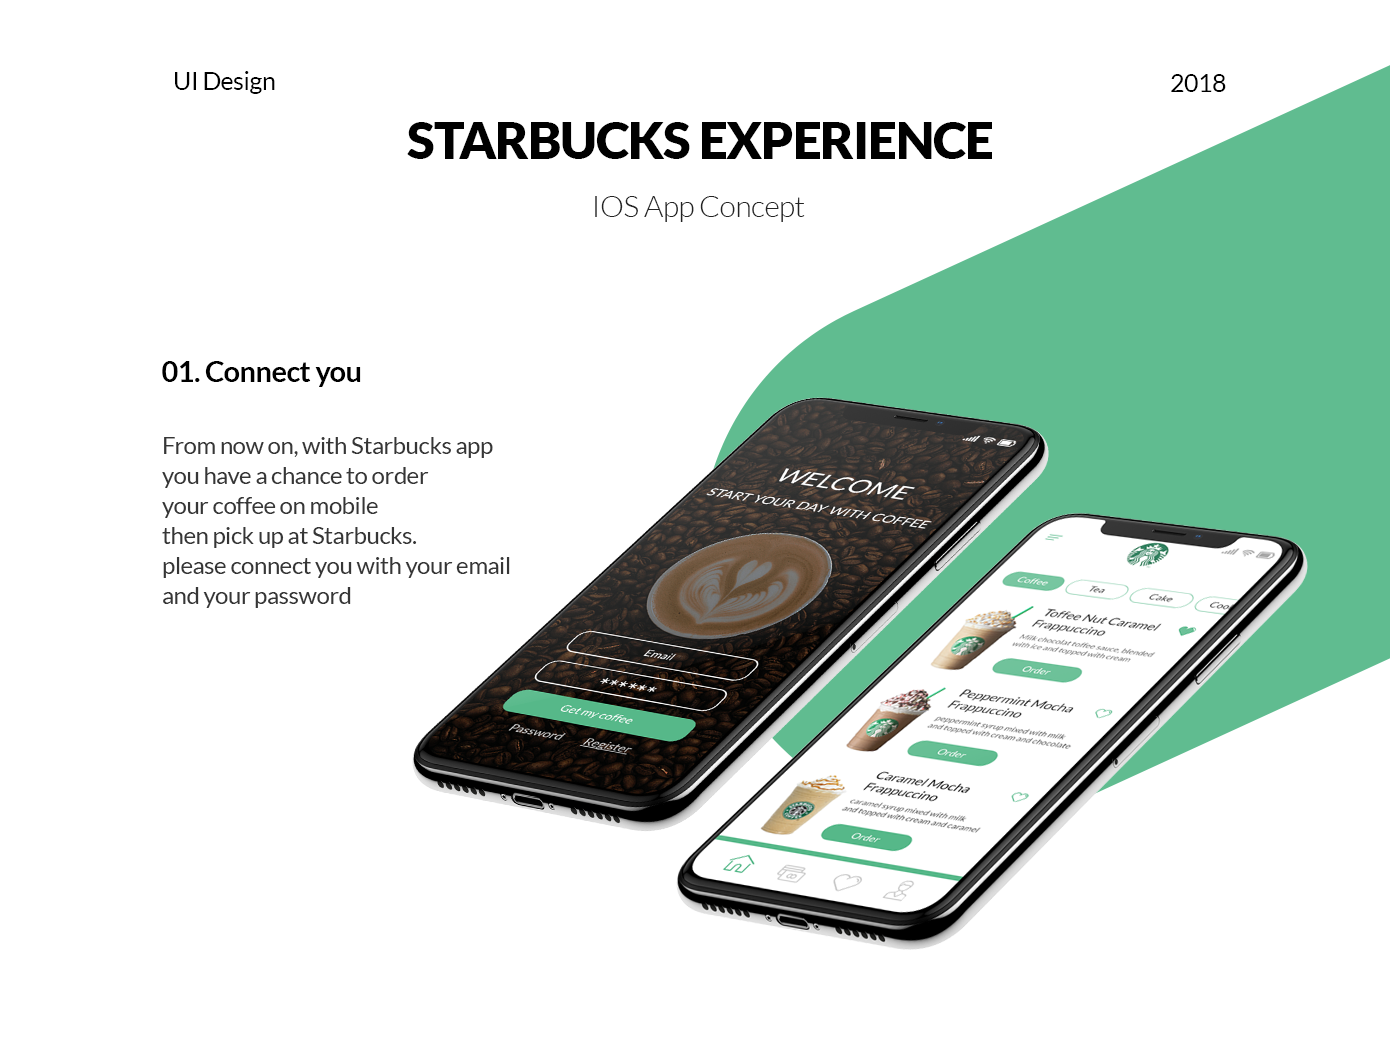 Mobile- Starbucks experience